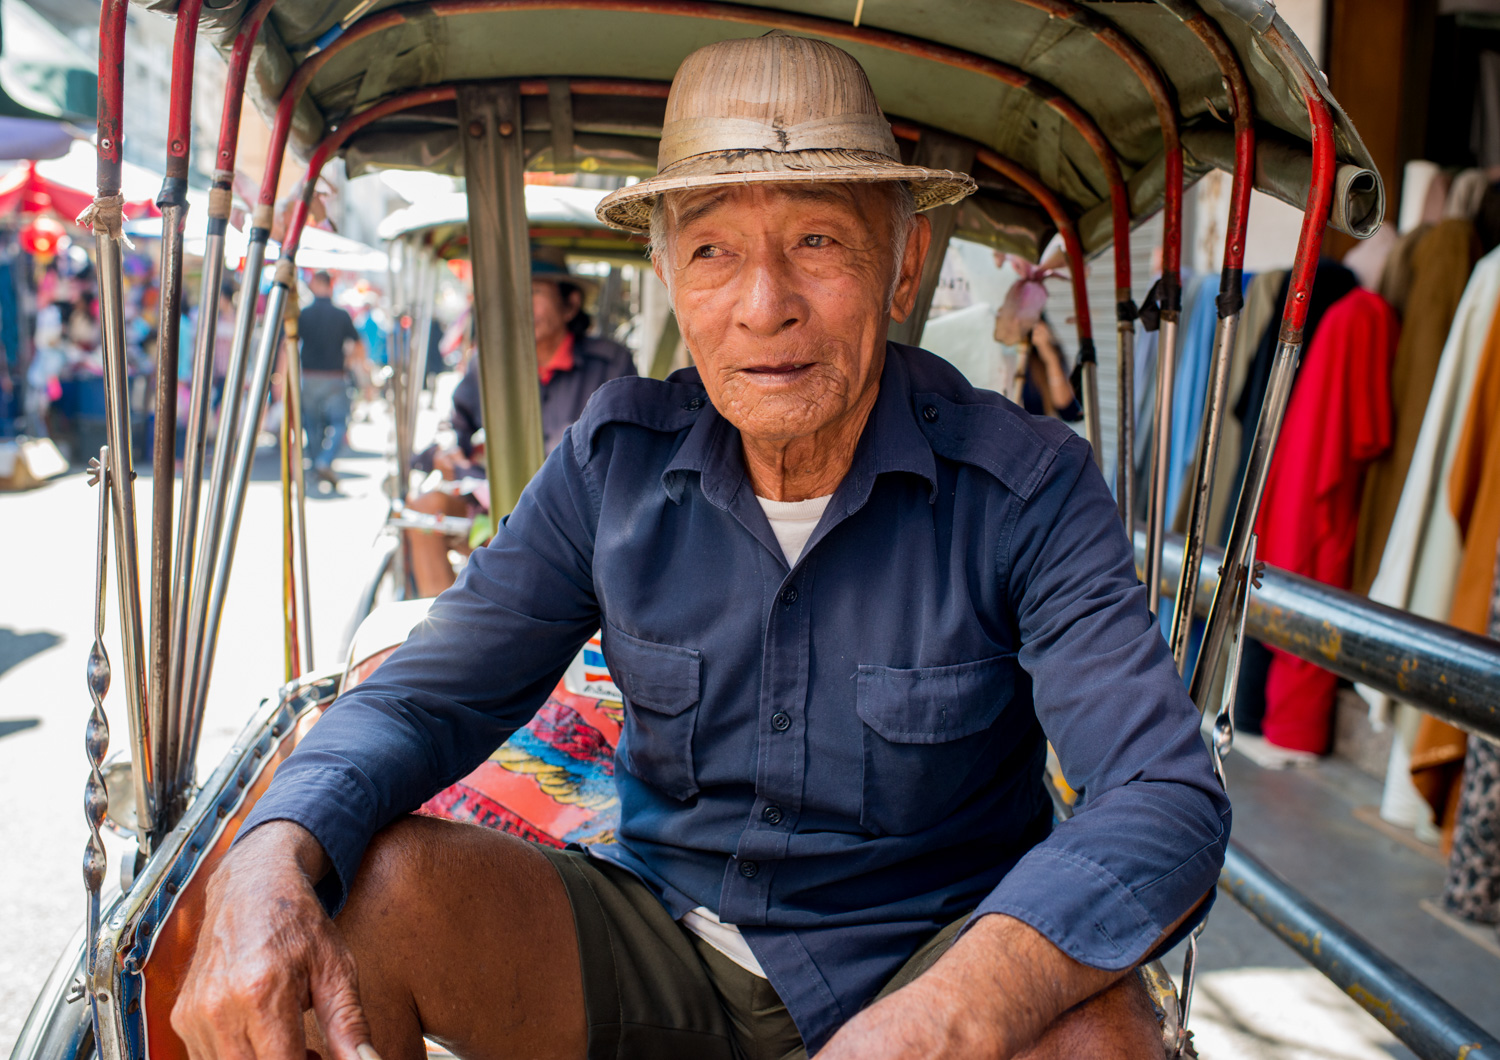 Taxi Rider in Chiang Mai, Thailand How to Create a Documentary Photography Project